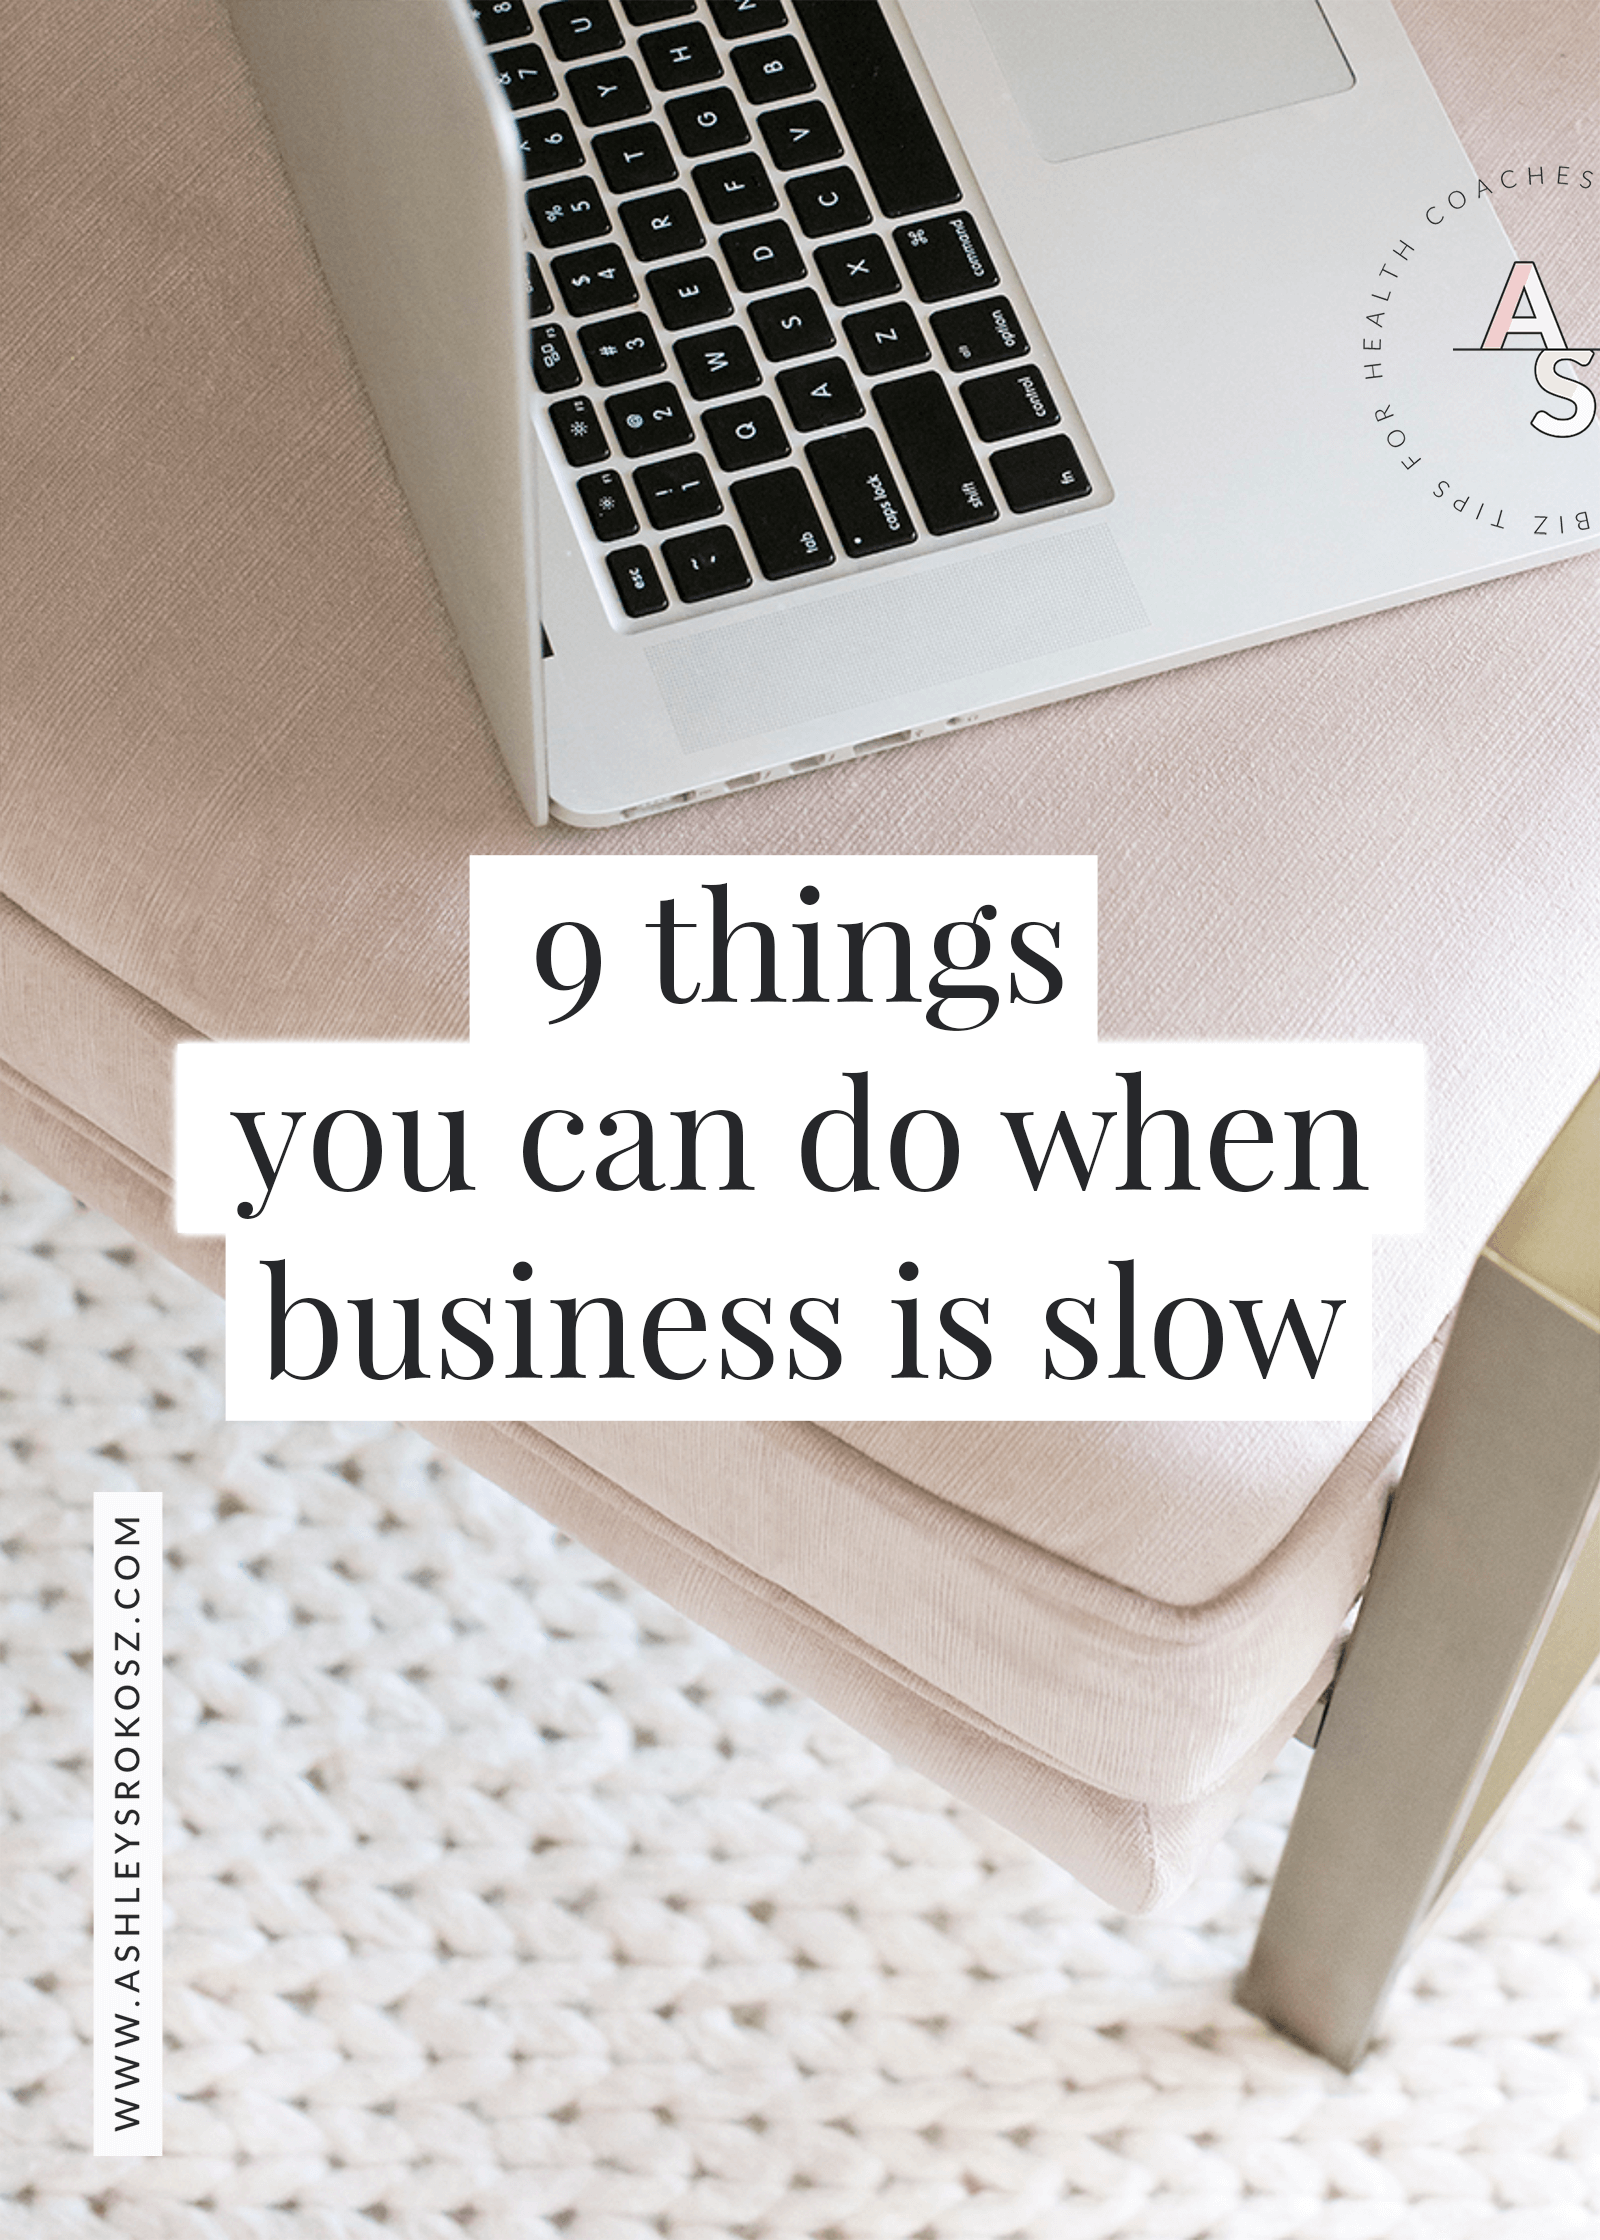 It's normal for a business to have a lull, but you can still grow your business during this slow time! Click to learn 9 things you can do to grow your business when it's slow. The best part is that most of these things you can do once, and they'll help you find paying clients and grow your email list for months or years to come! This is perfect for holistic nutritionists, health coaches, yoga teachers, naturopaths, and essential oil advocates.